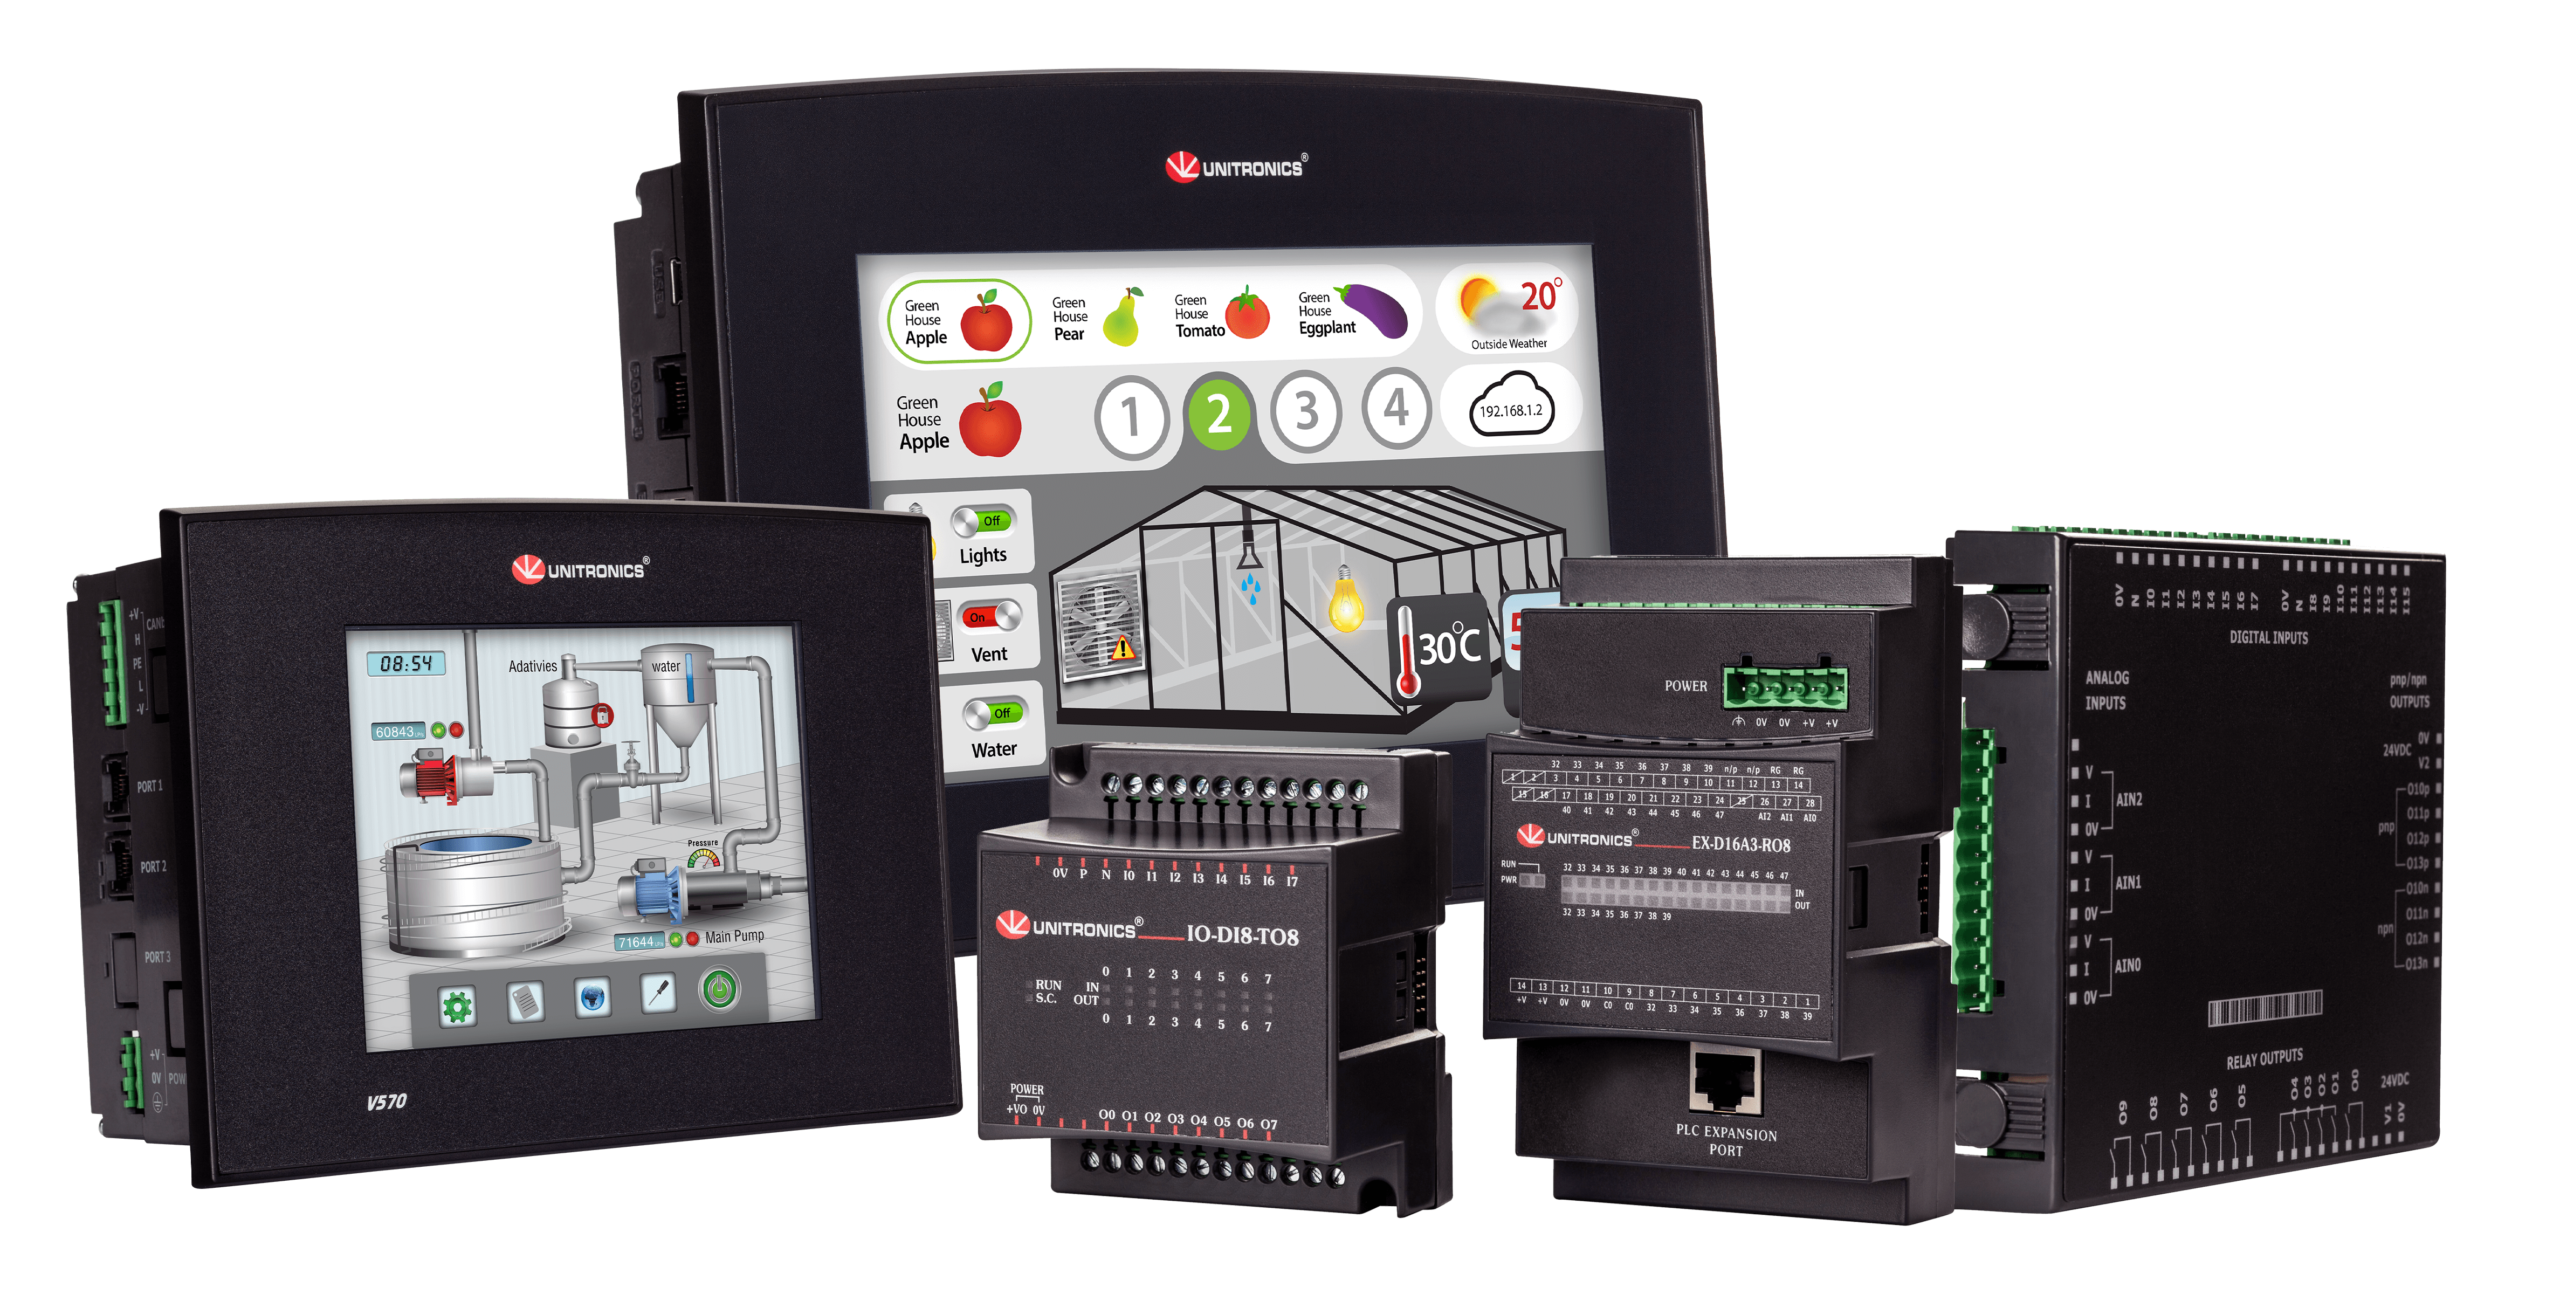 unitronics Vision All-in-One controllers